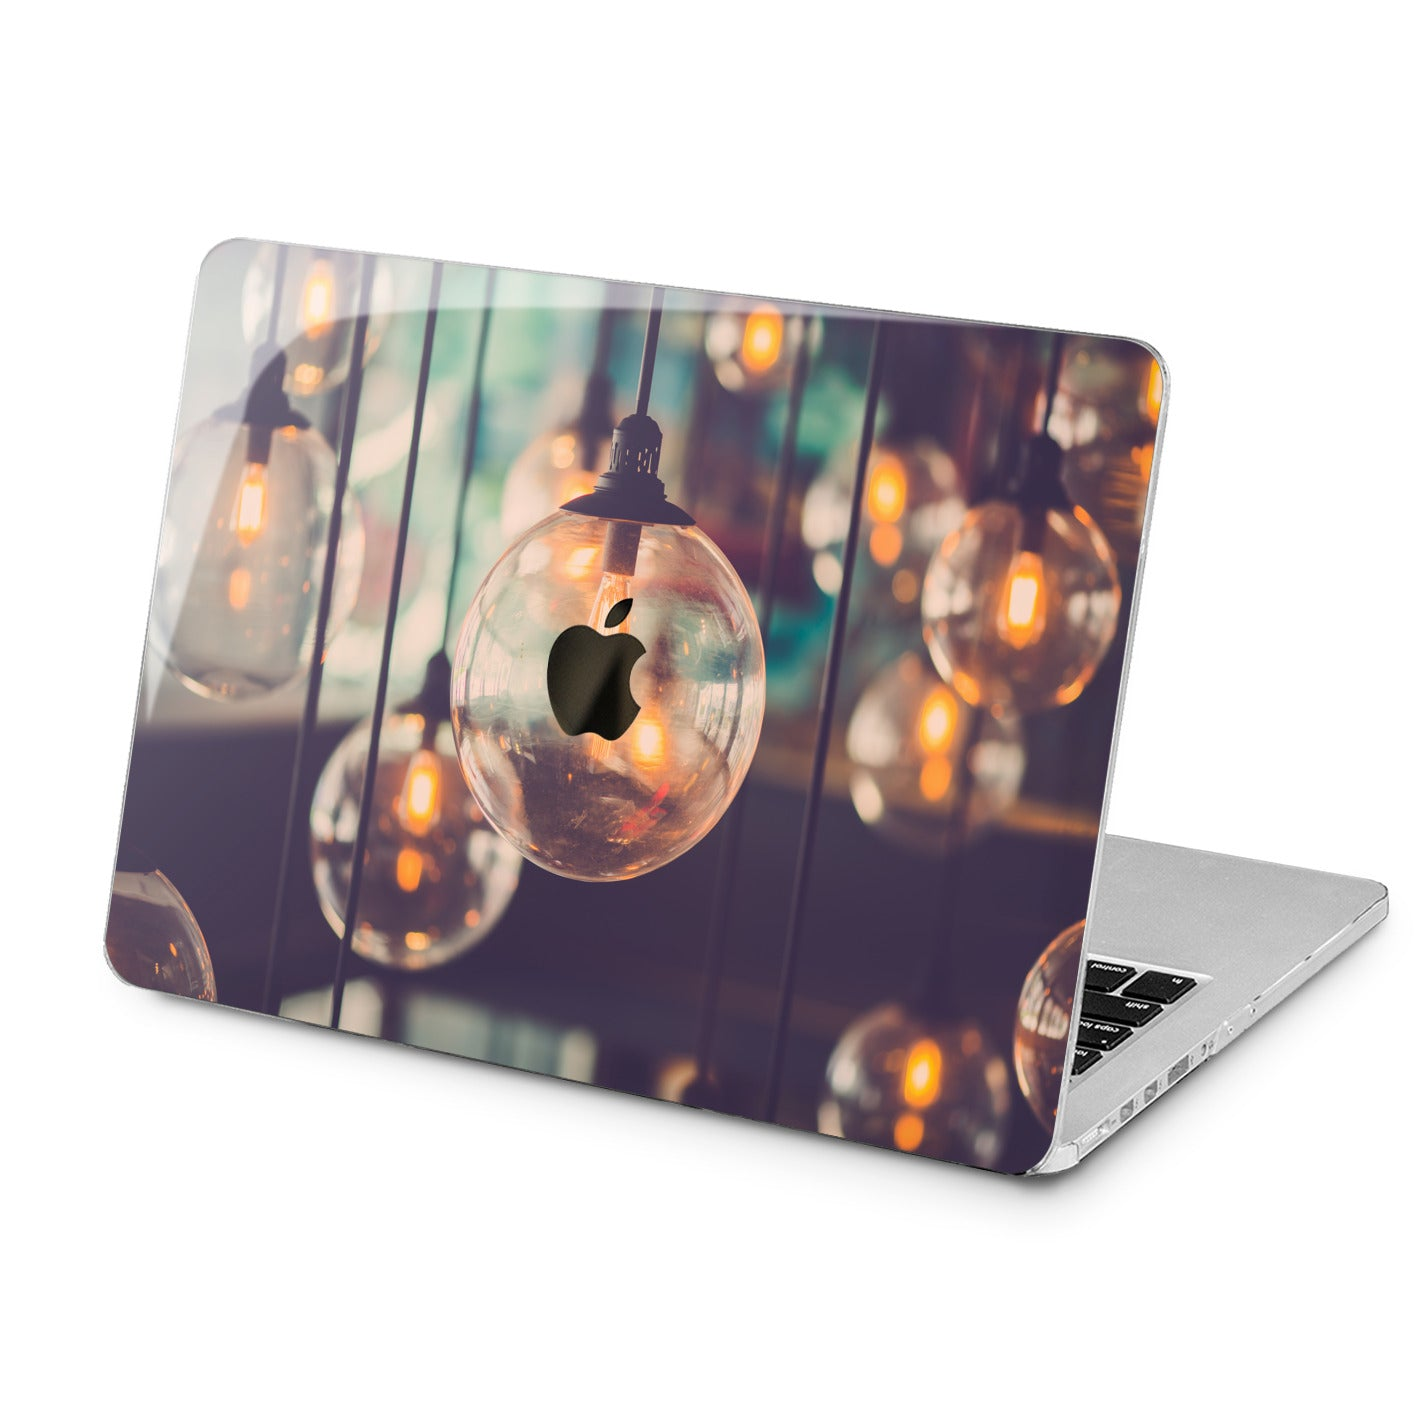 Lex Altern Lex Altern Beautiful Lamps Case for your Laptop Apple Macbook.